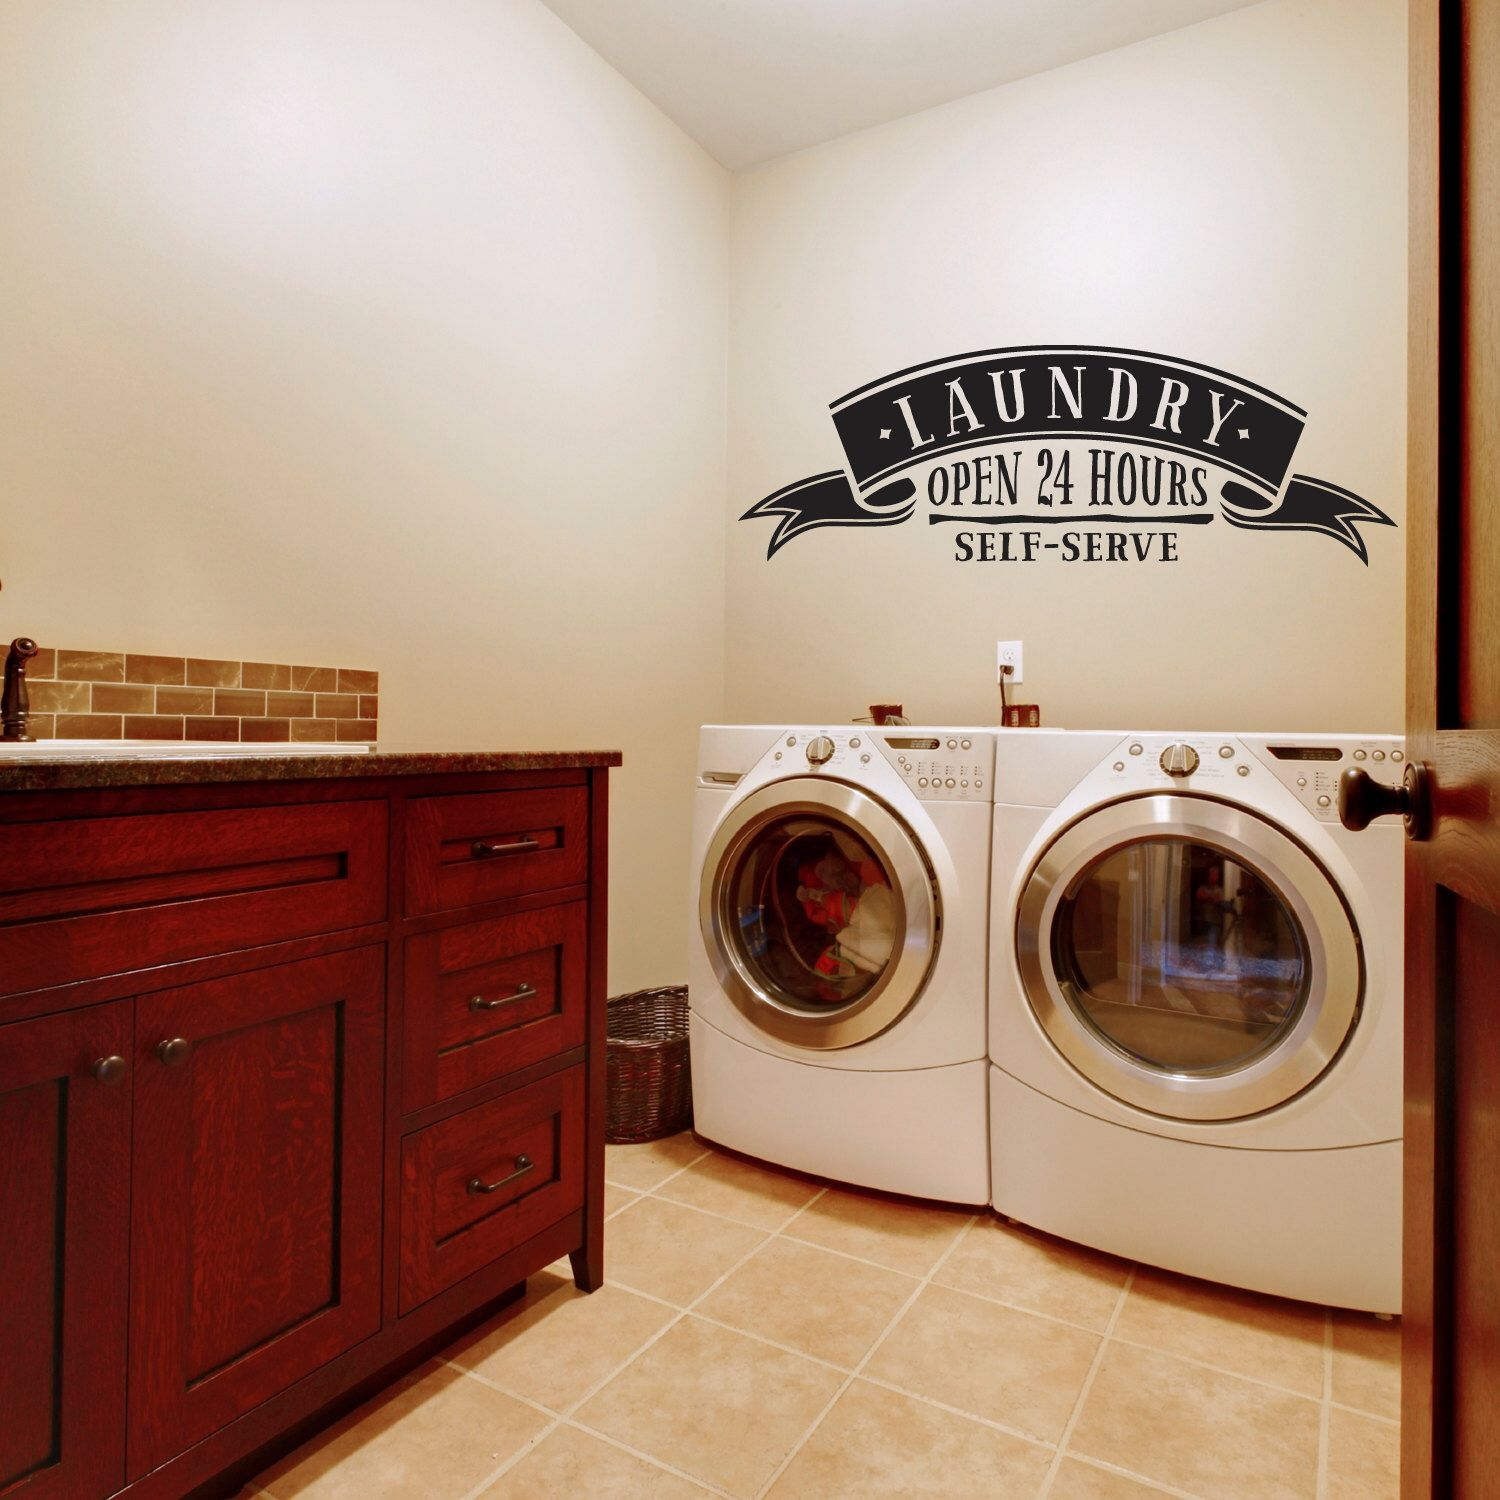 Removable Wall Decals Laundry Room Laundry Room  Self Service Landry Open 24 Hours  Laundry Room